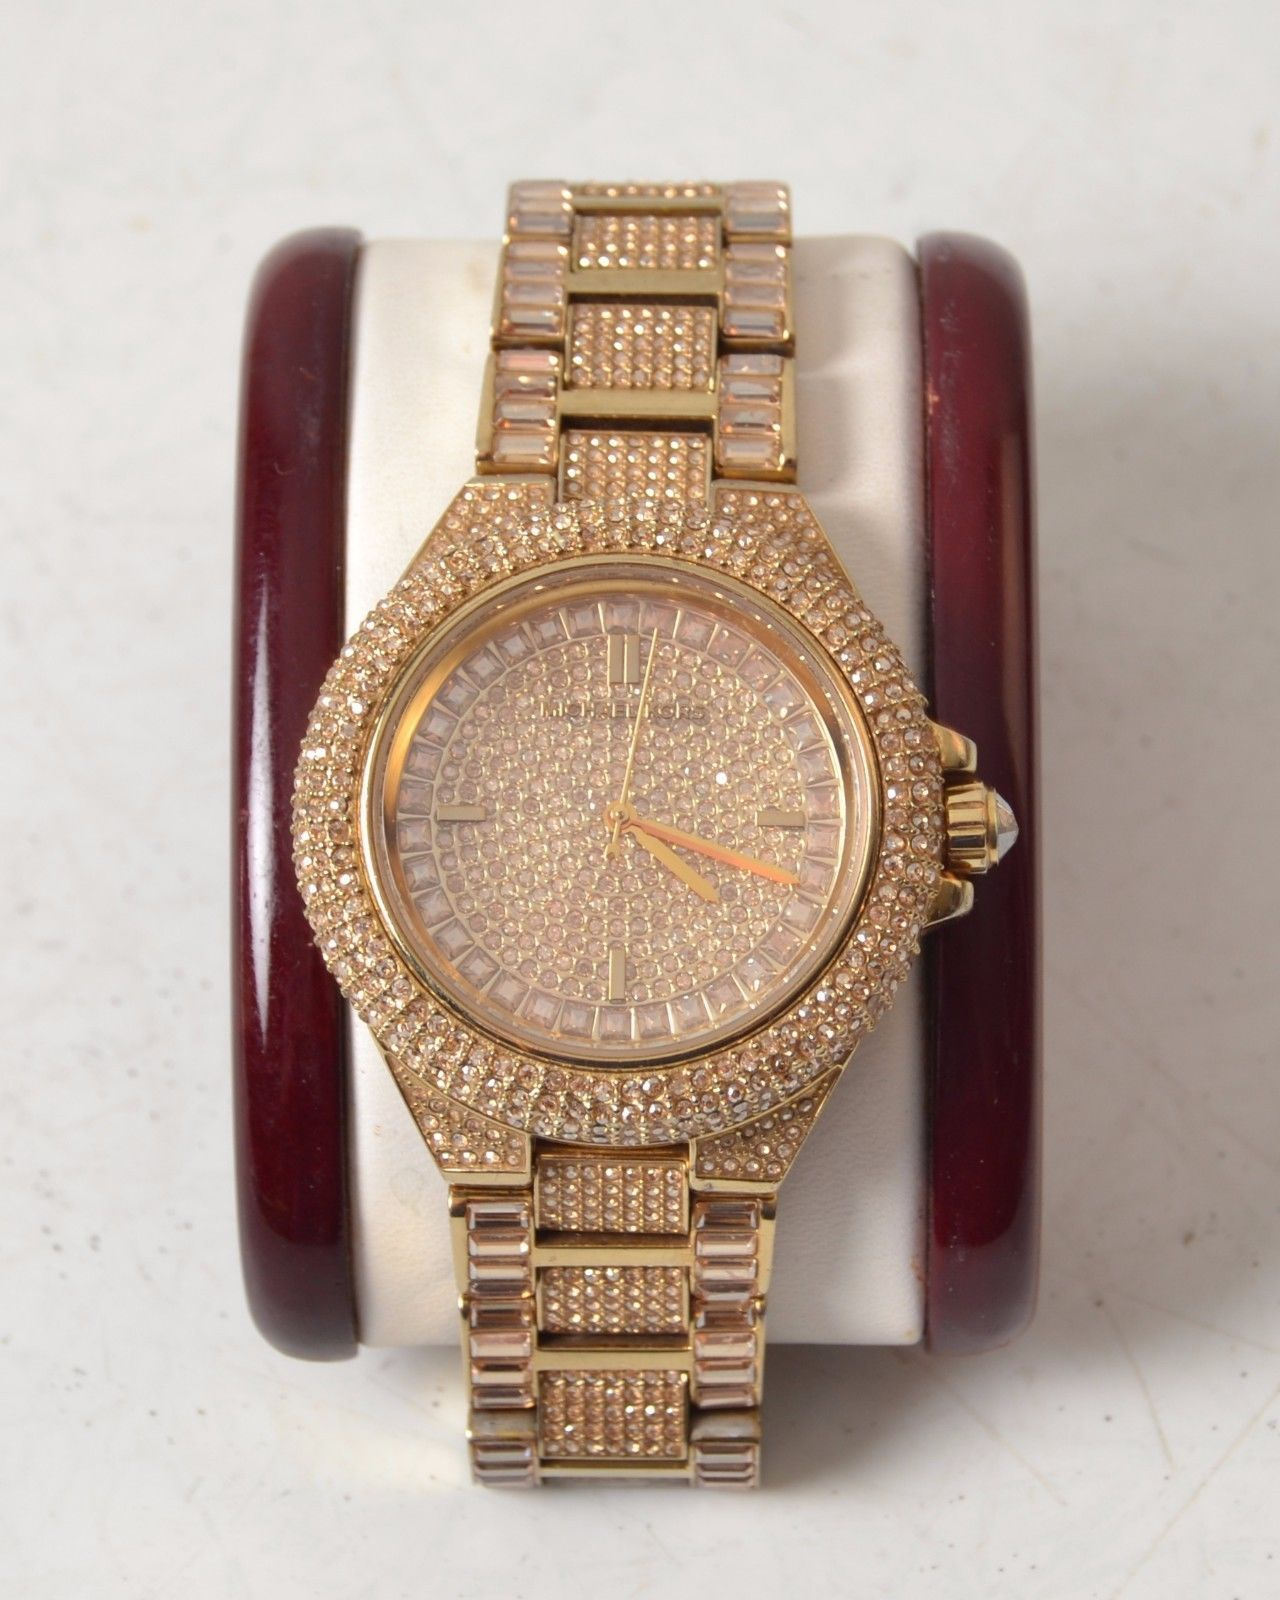 0344da9caef1 Michael Kors Watch MK5720 Gold Tone Crystal Covered Pave Glitz Bling  https   t